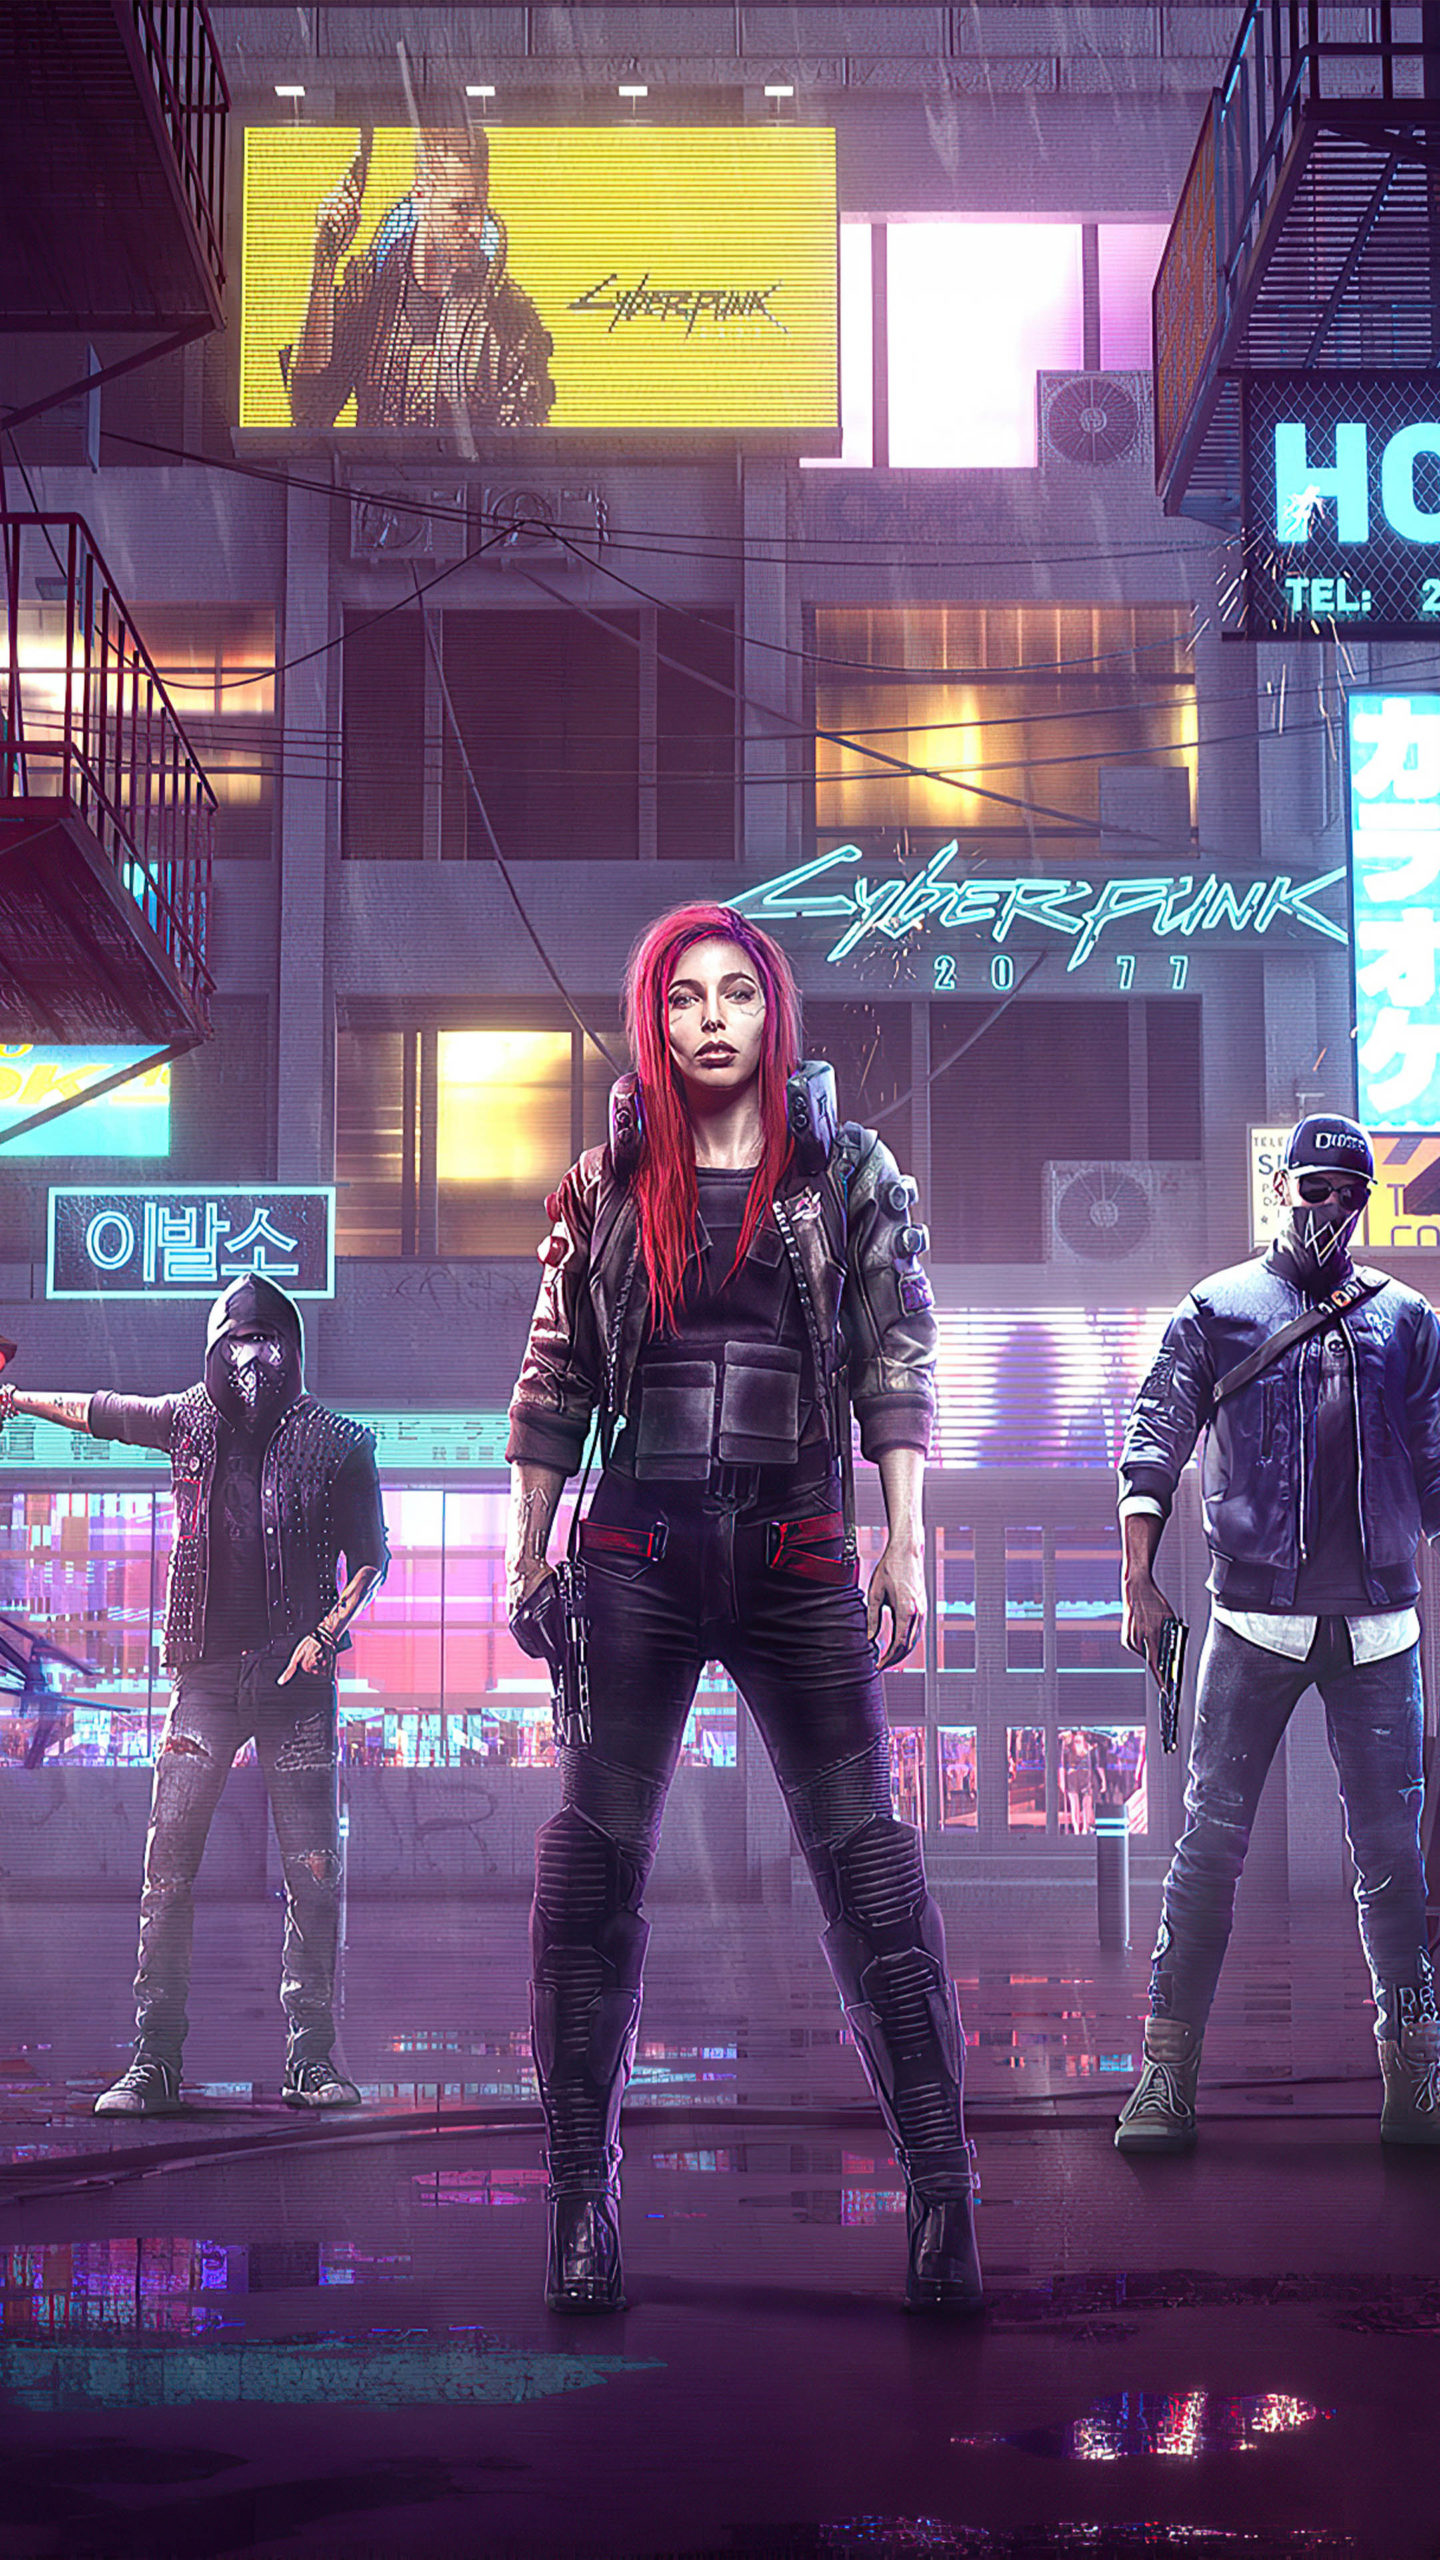 Cyberpunk 2077 New 2020 Game Poster 4K Ultra HD Mobile